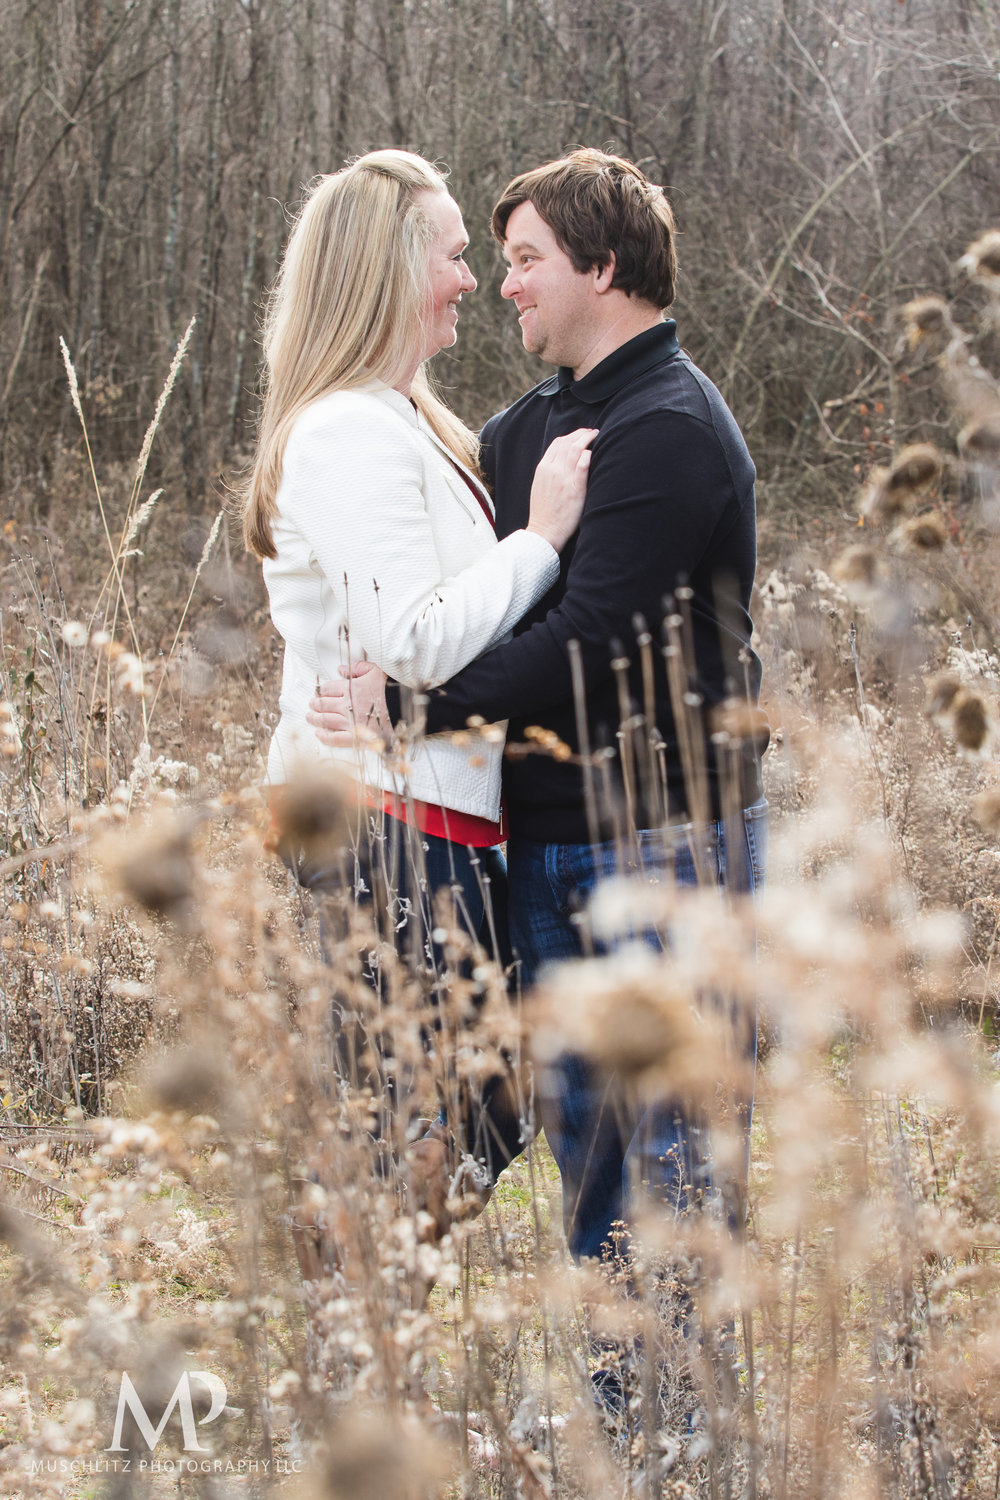 Gahanna-Columbus-Ohio-Winter-Engagement-Portrait-Photographer-Outdoors-muschlitz-photography021.JPG